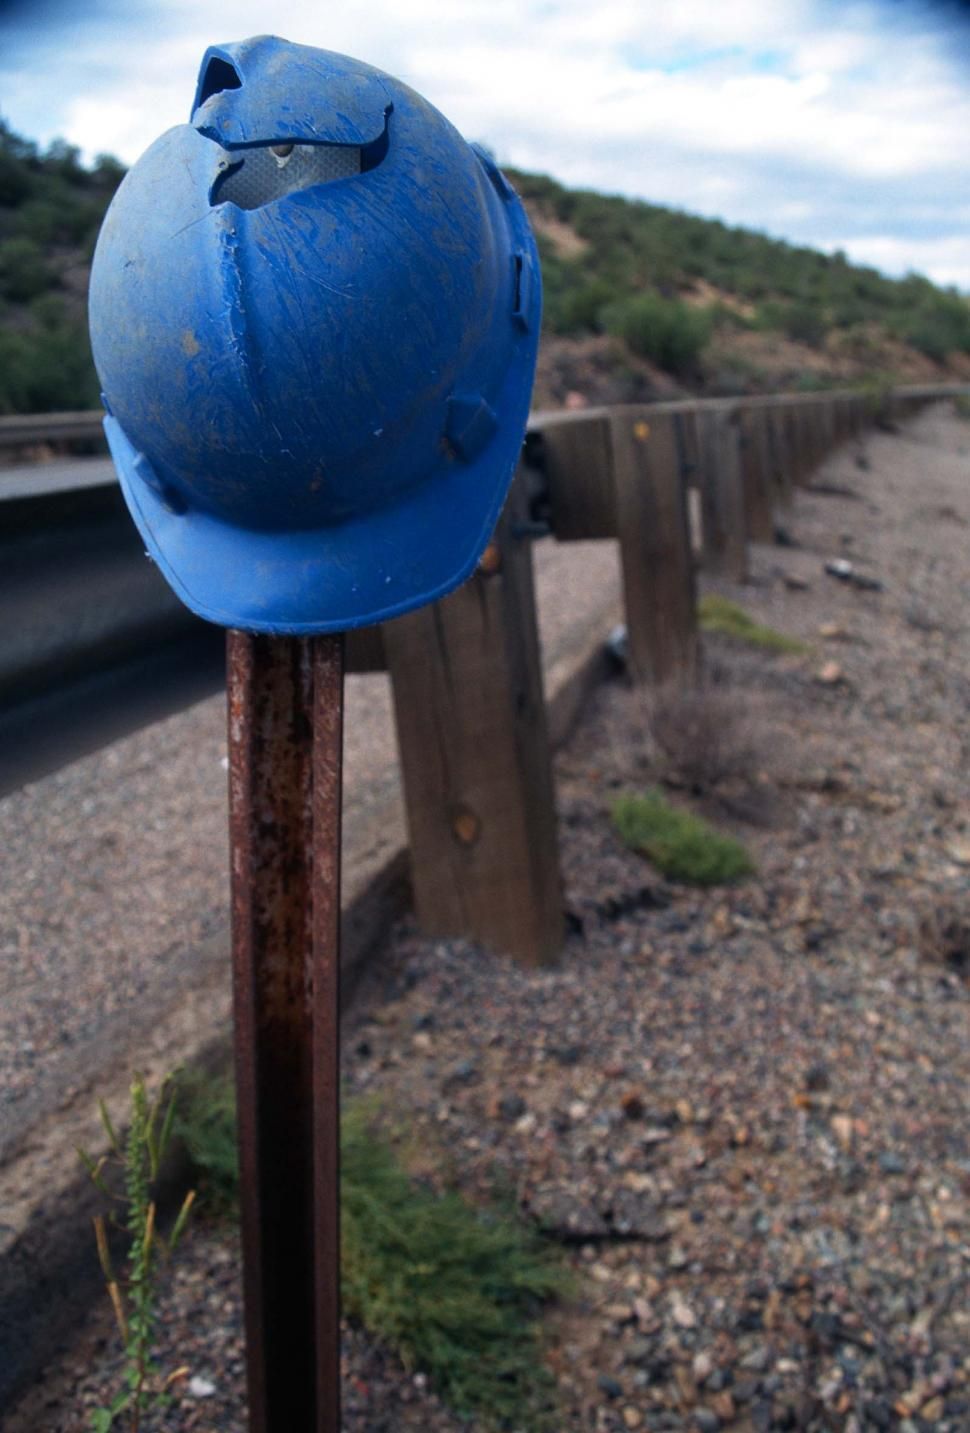 Download Free Stock HD Photo of Hardhat on a post Online